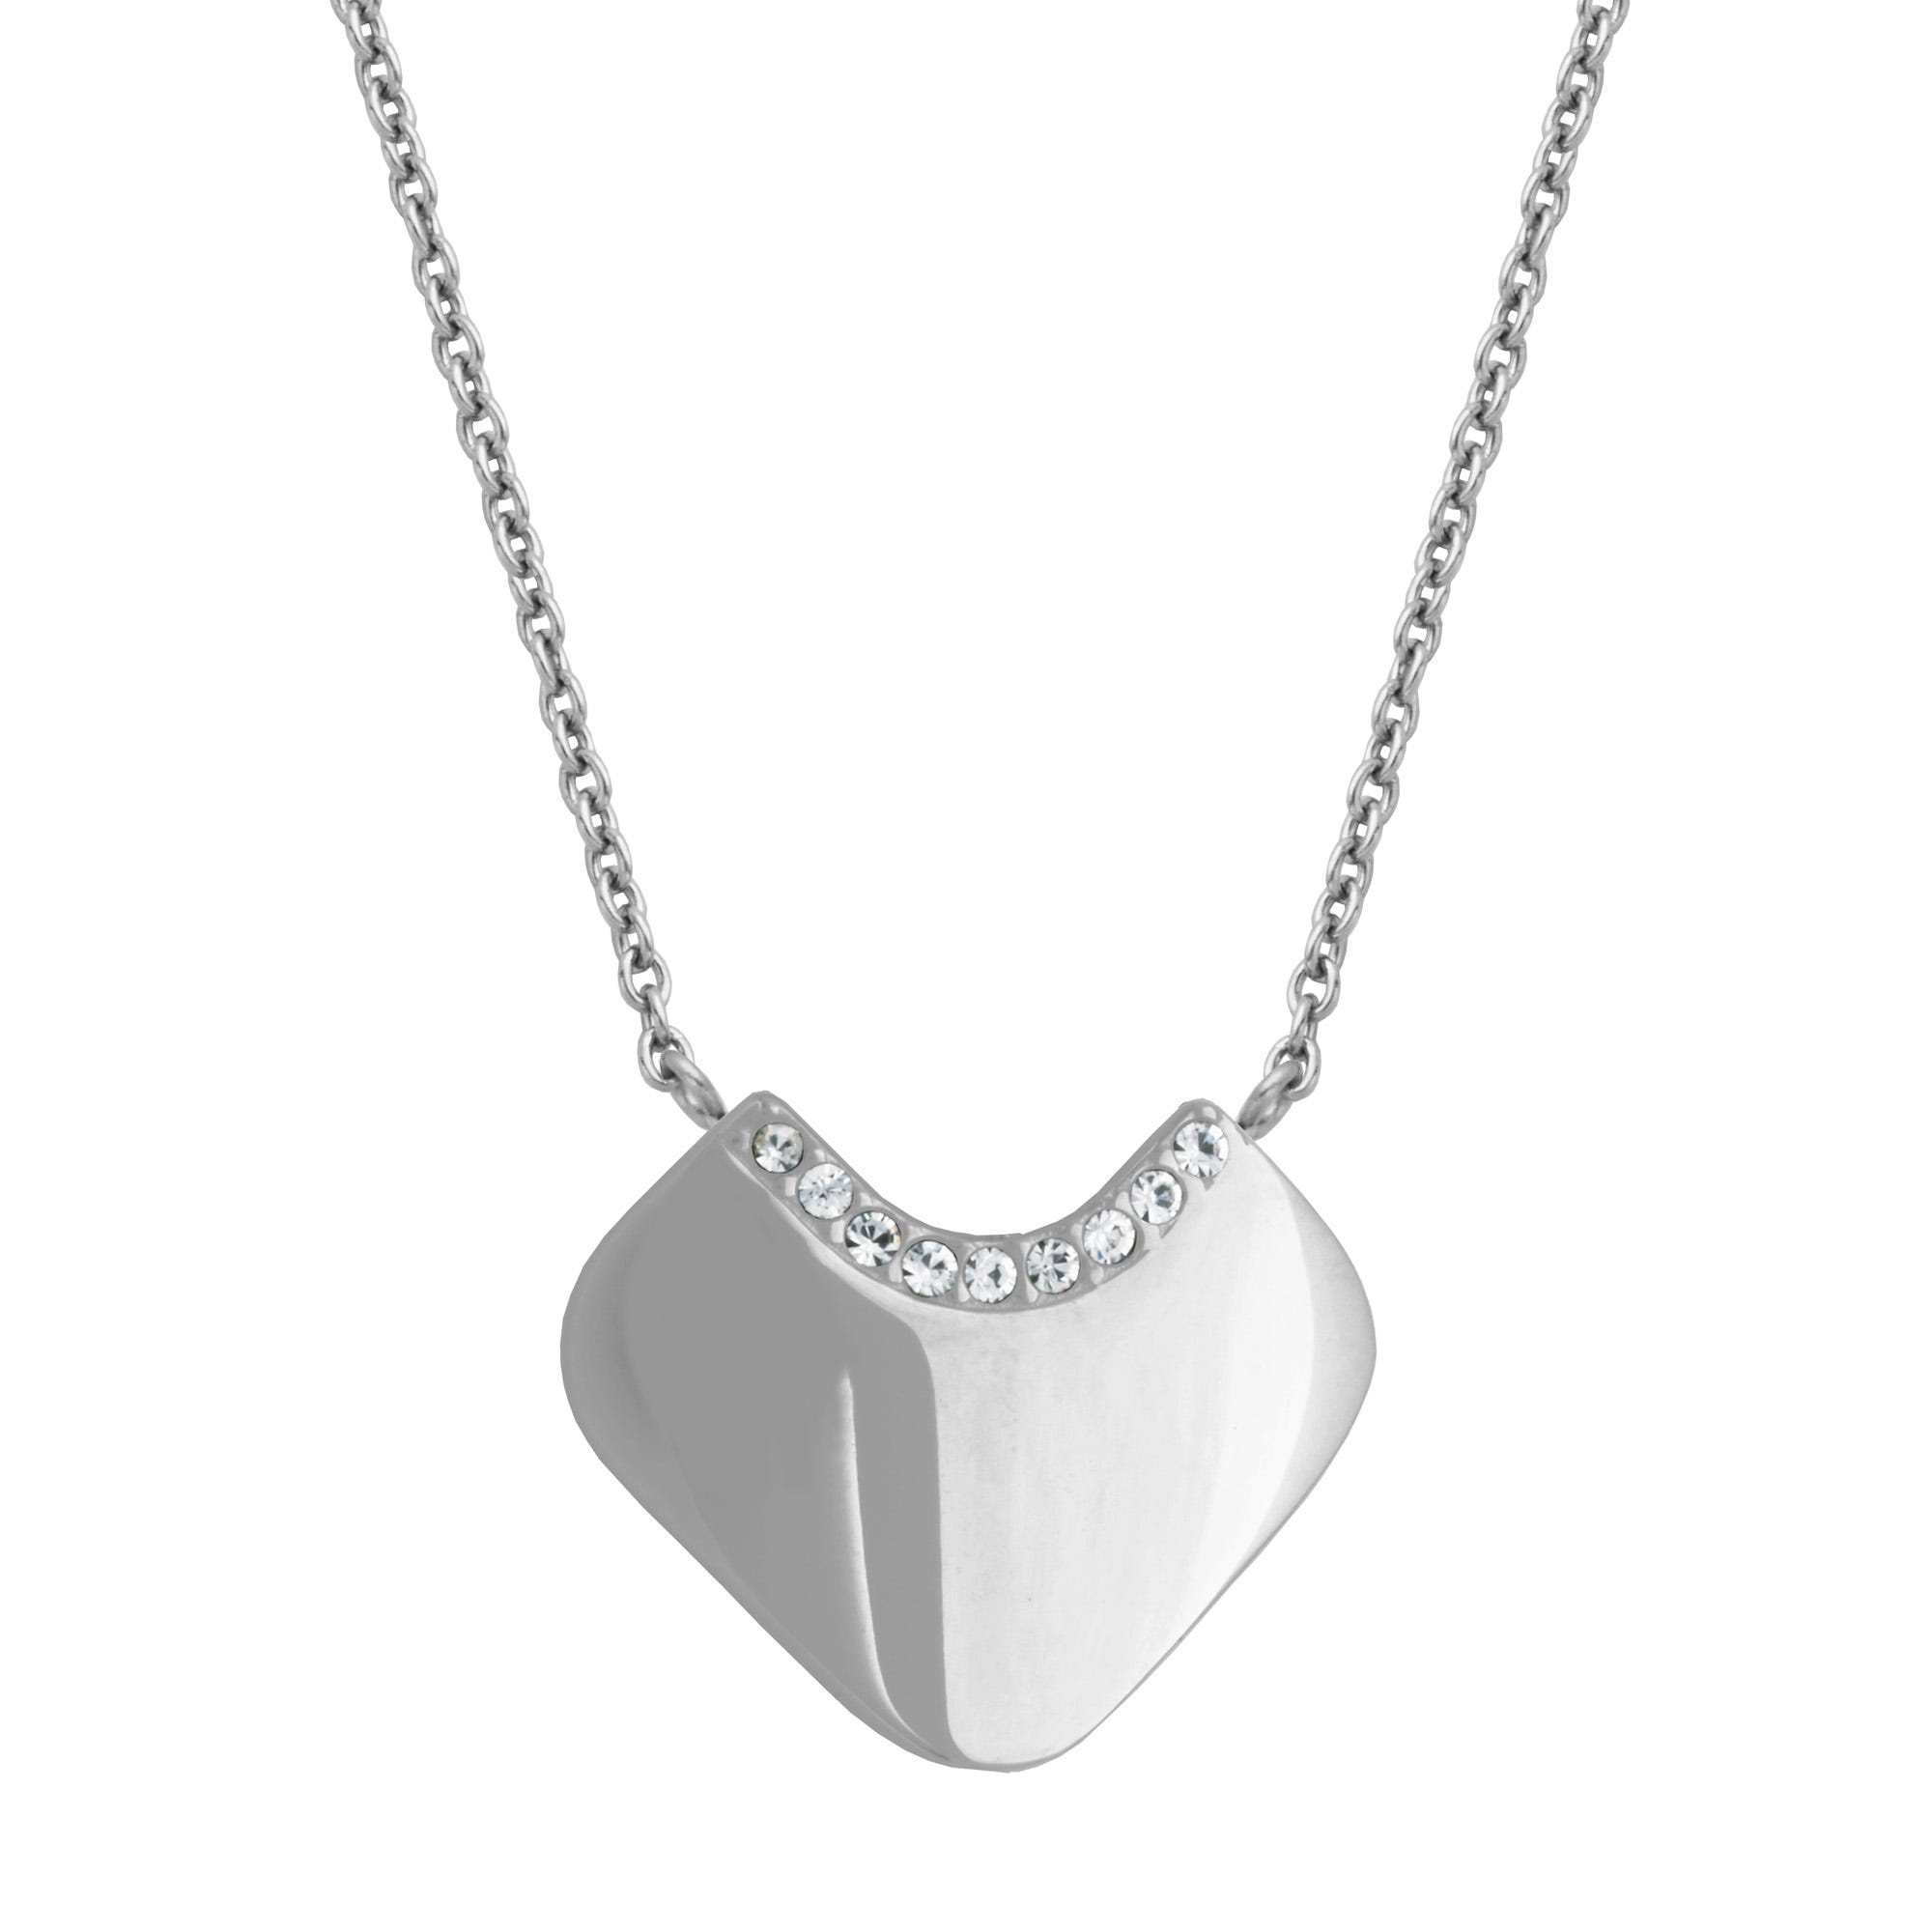 Heart Cleopatra Style Crystal Fashion Necklace in Stainless Steel